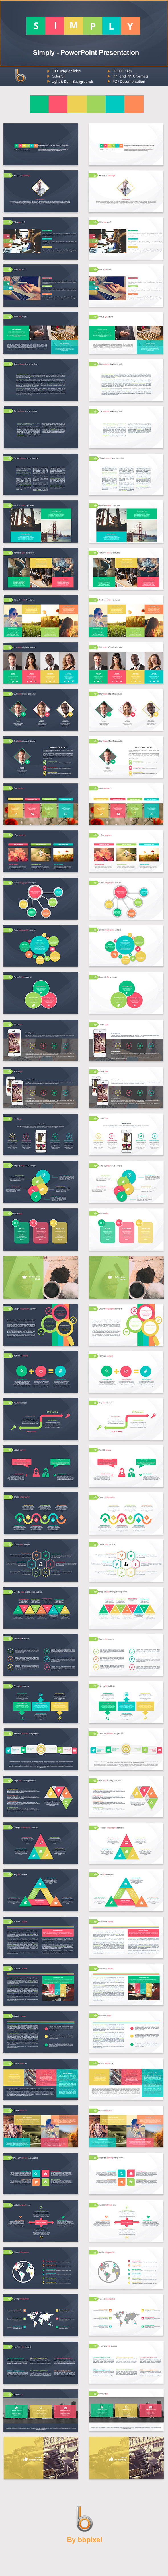 GraphicRiver Simply PowerPoint Presentation Template 10984730